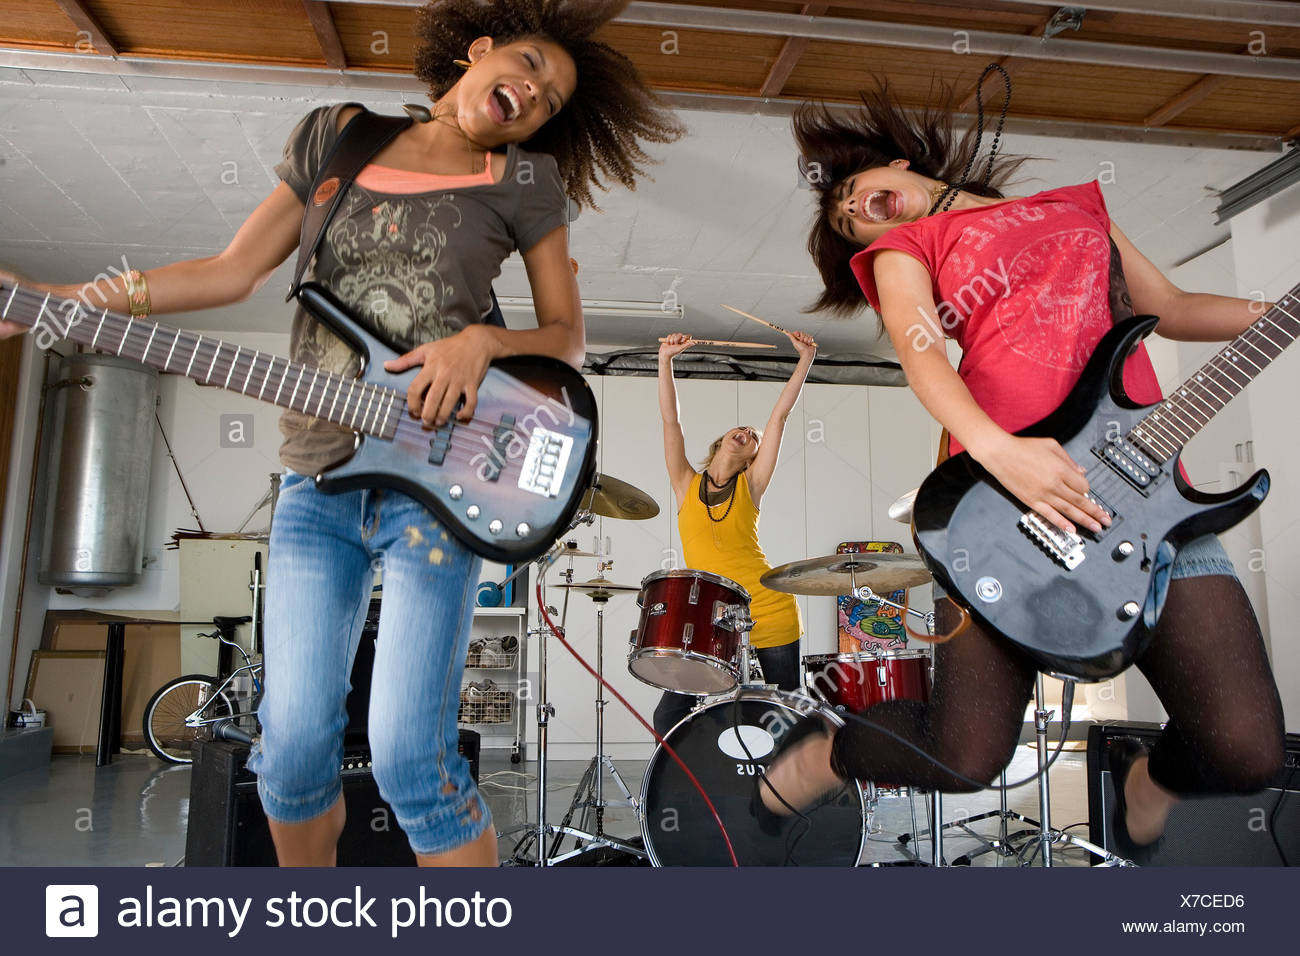 Three teenage girls  in garage band, two girls playing electric guitar in foreground - Stock Image